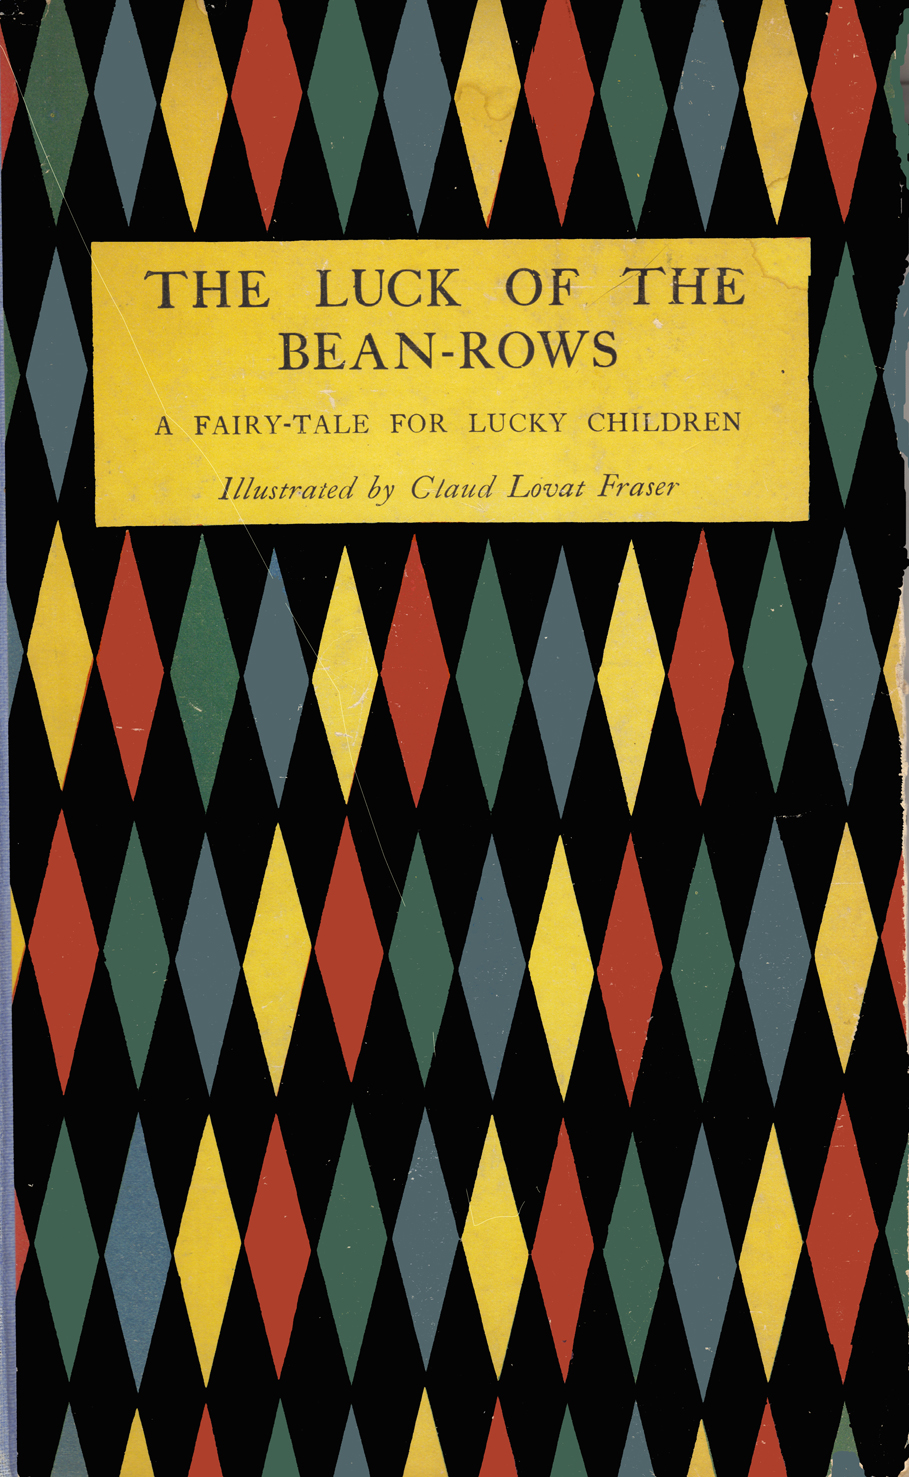 The cover, with a pattern of colored diamonds on a black background. The title is centered about a fourth of the way from the top